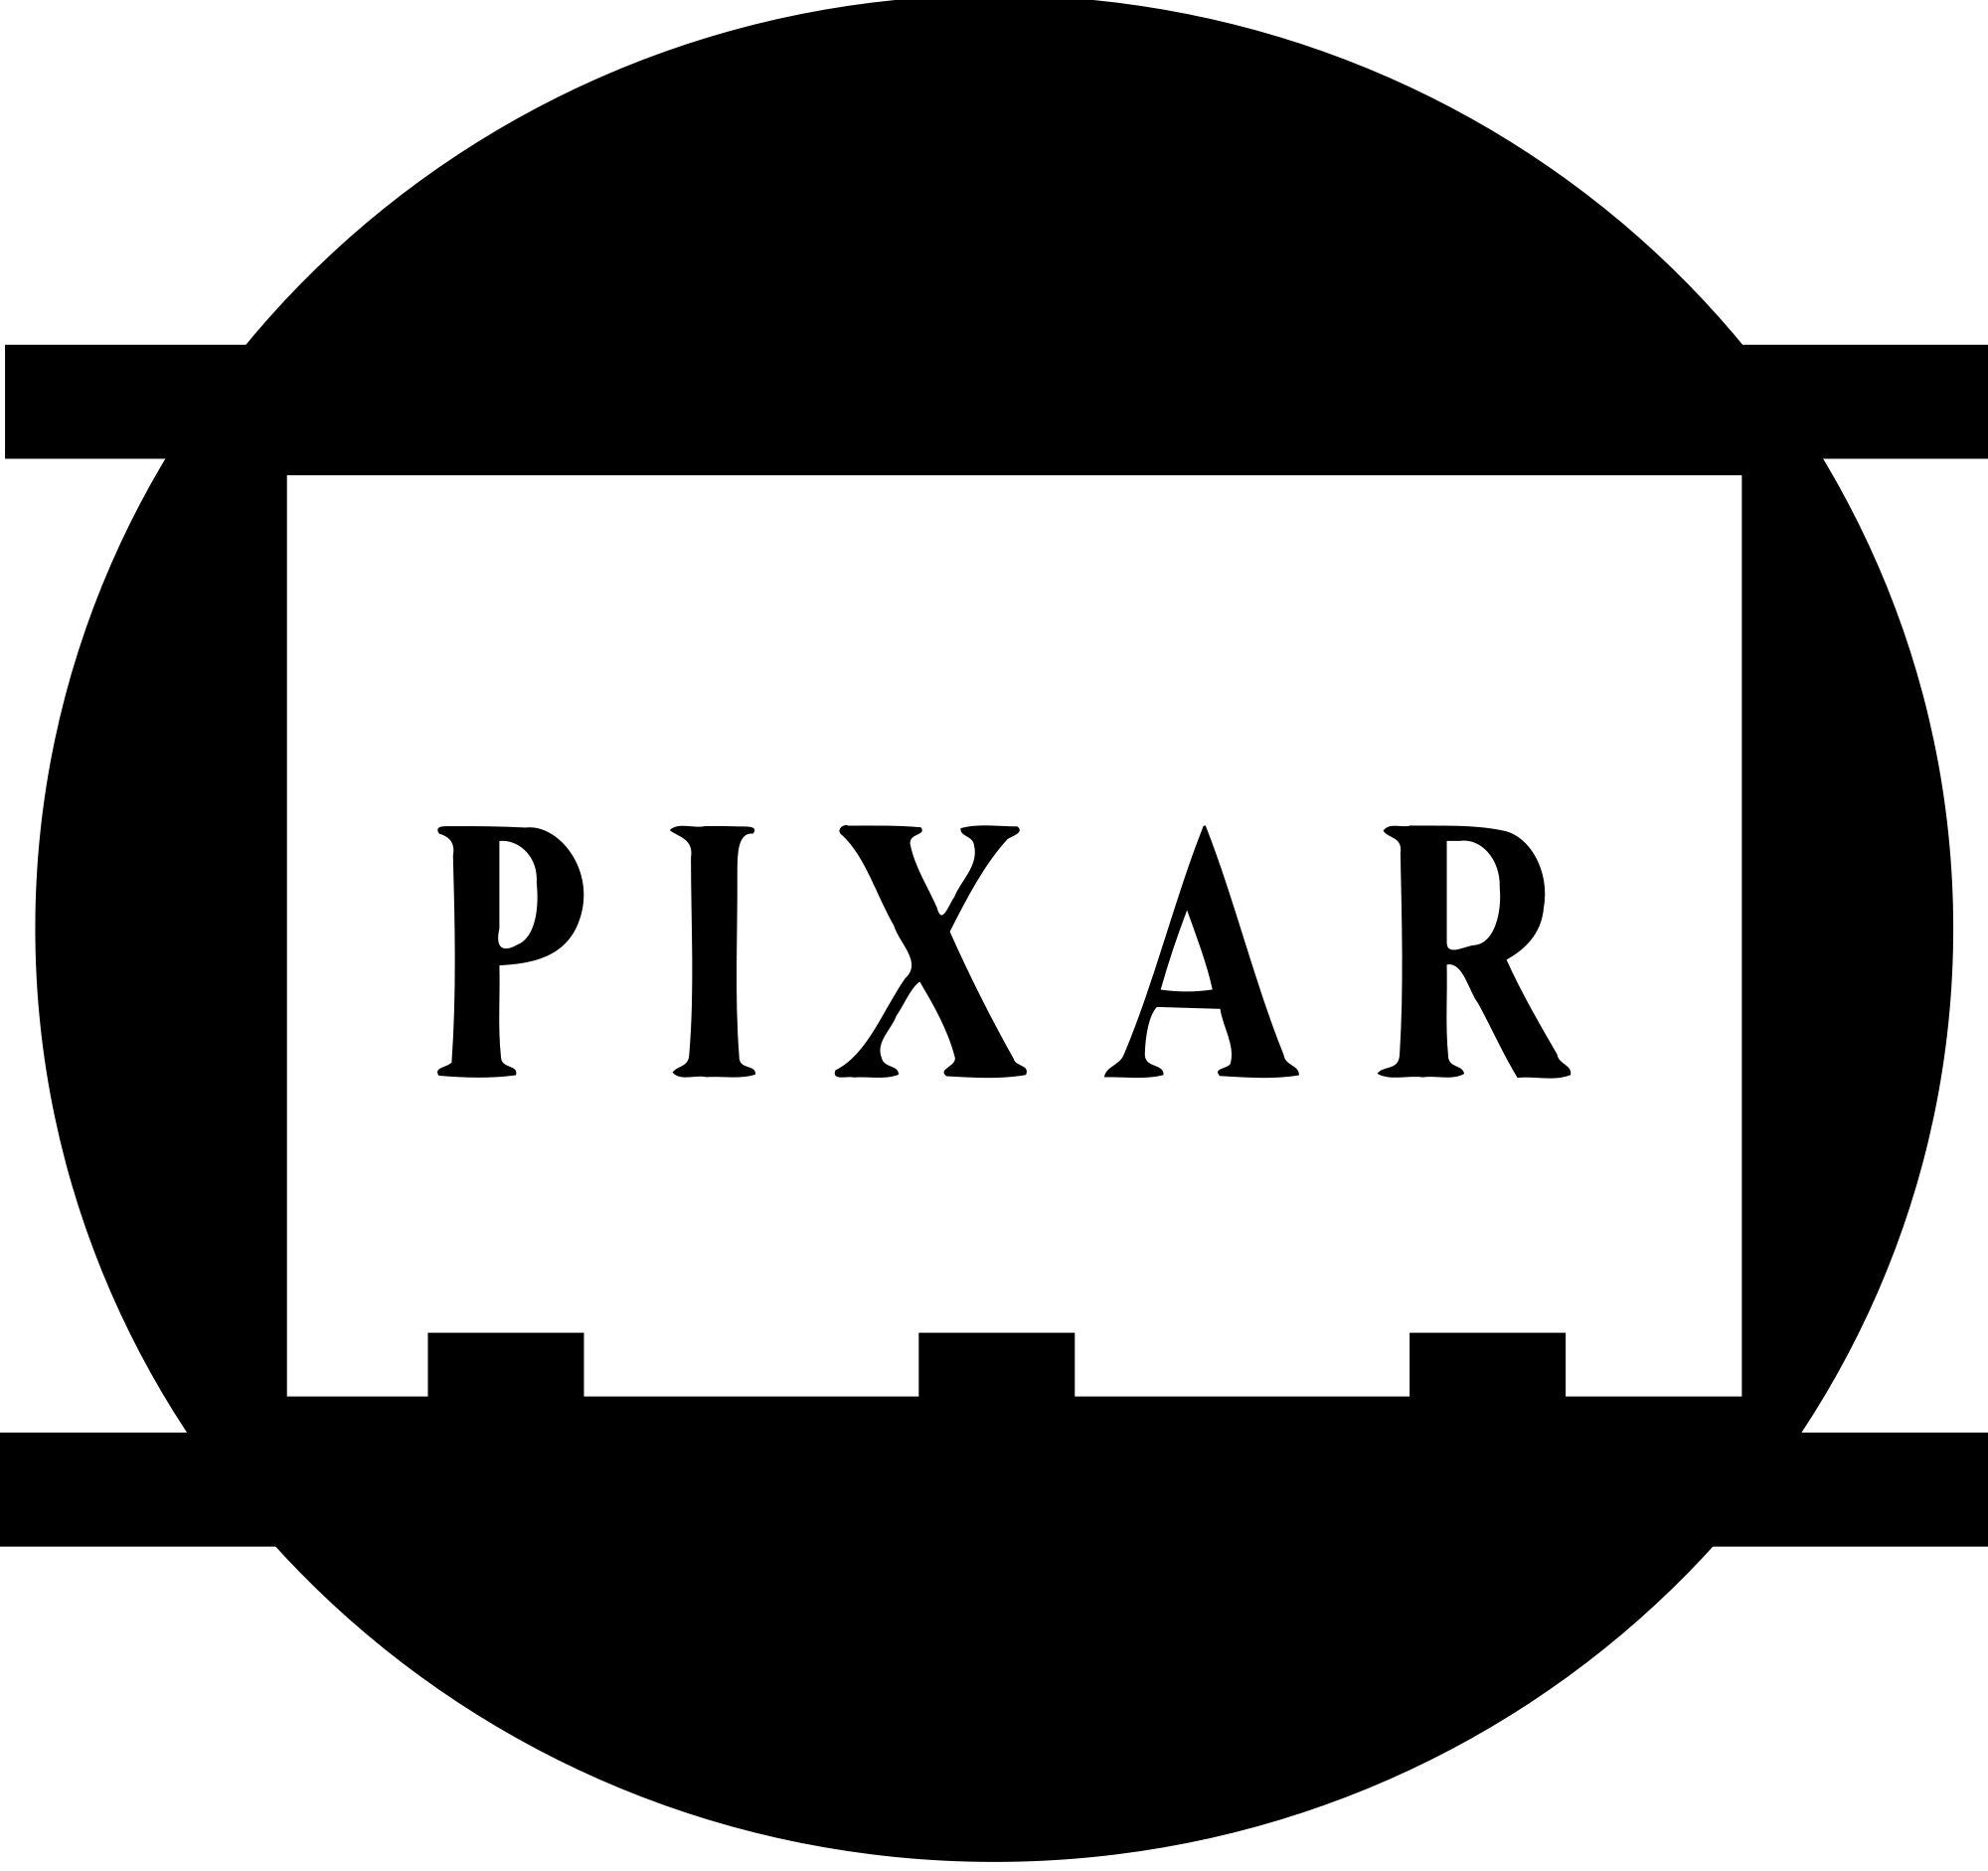 File animation disc pixar. Animate png files